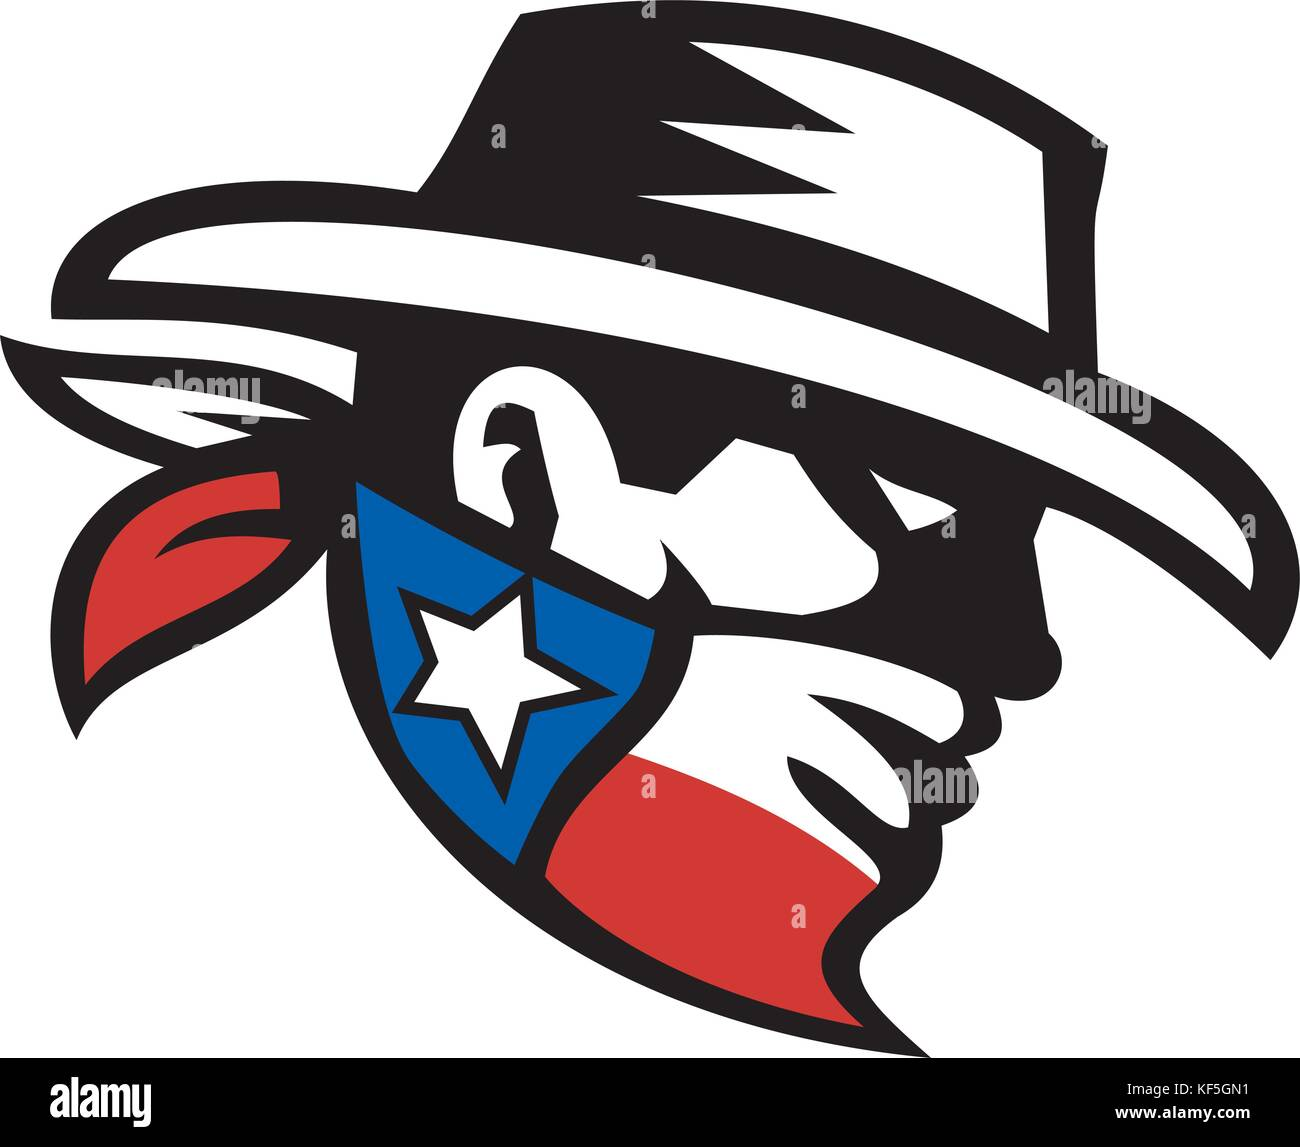 50418e4e114 Icon style illustration of head of a bandit or outlaw wearing a cowboy hat